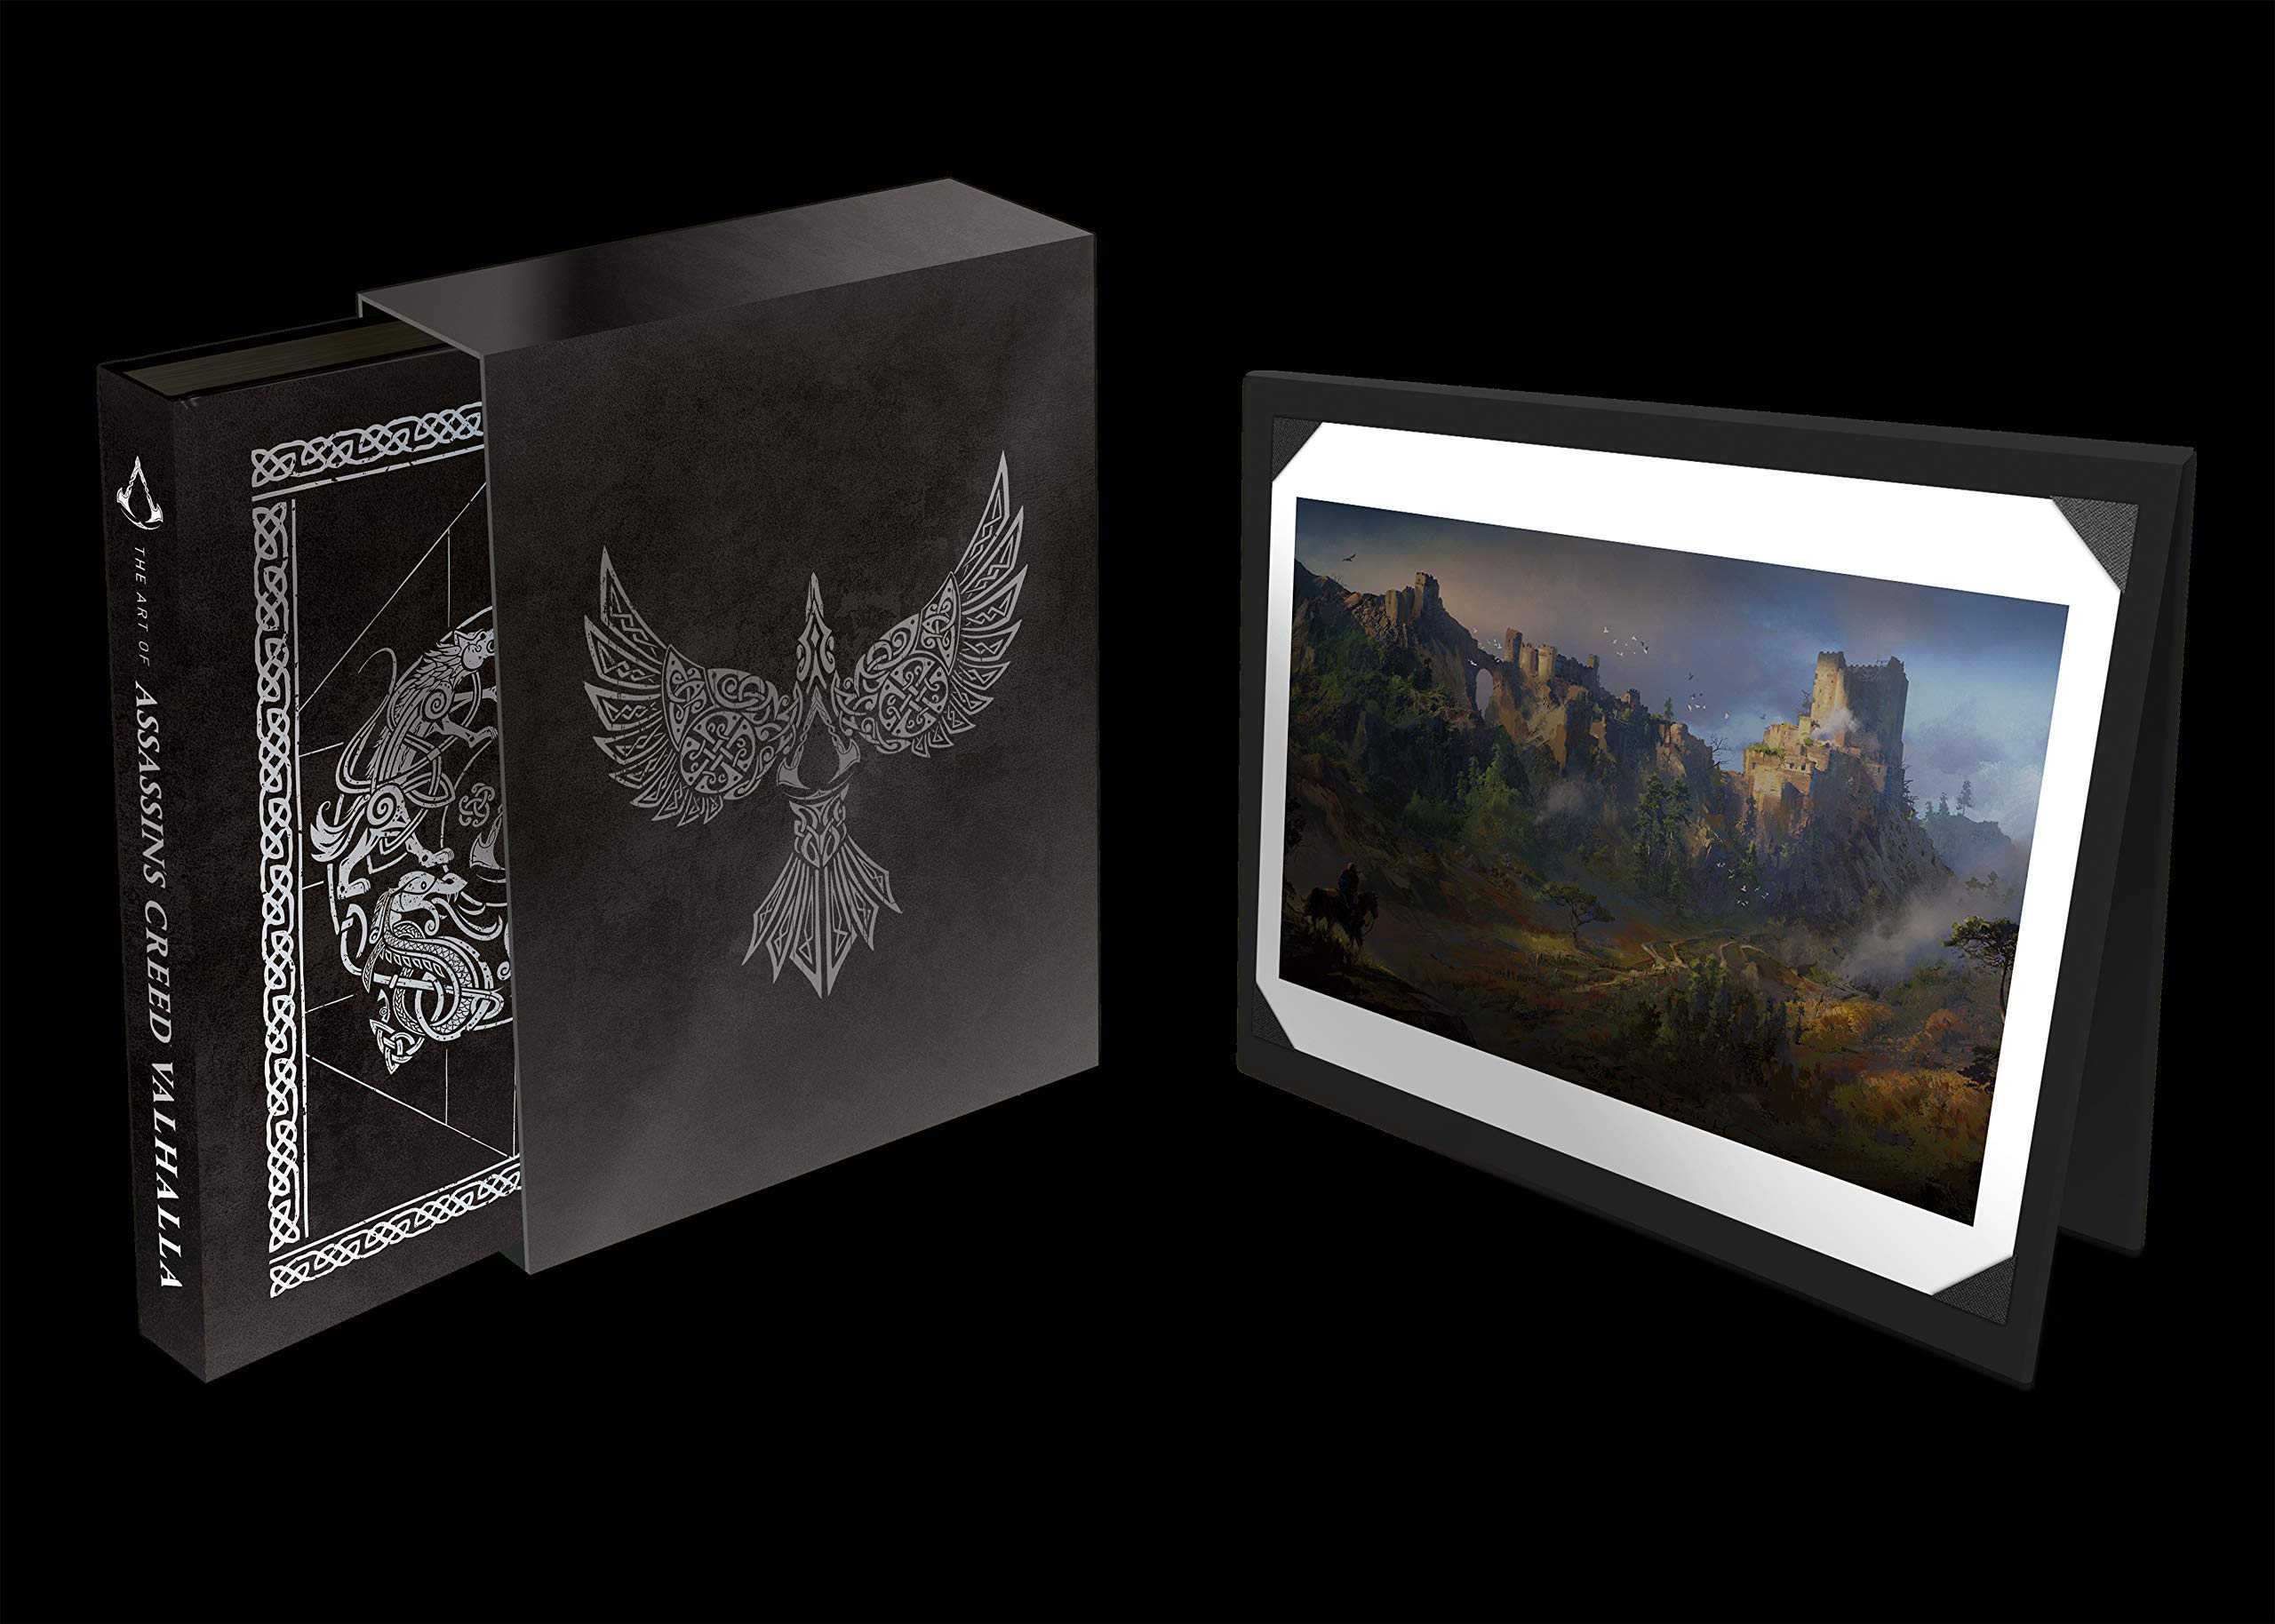 The Art of Assassin's Creed Valhalla Deluxe Edition